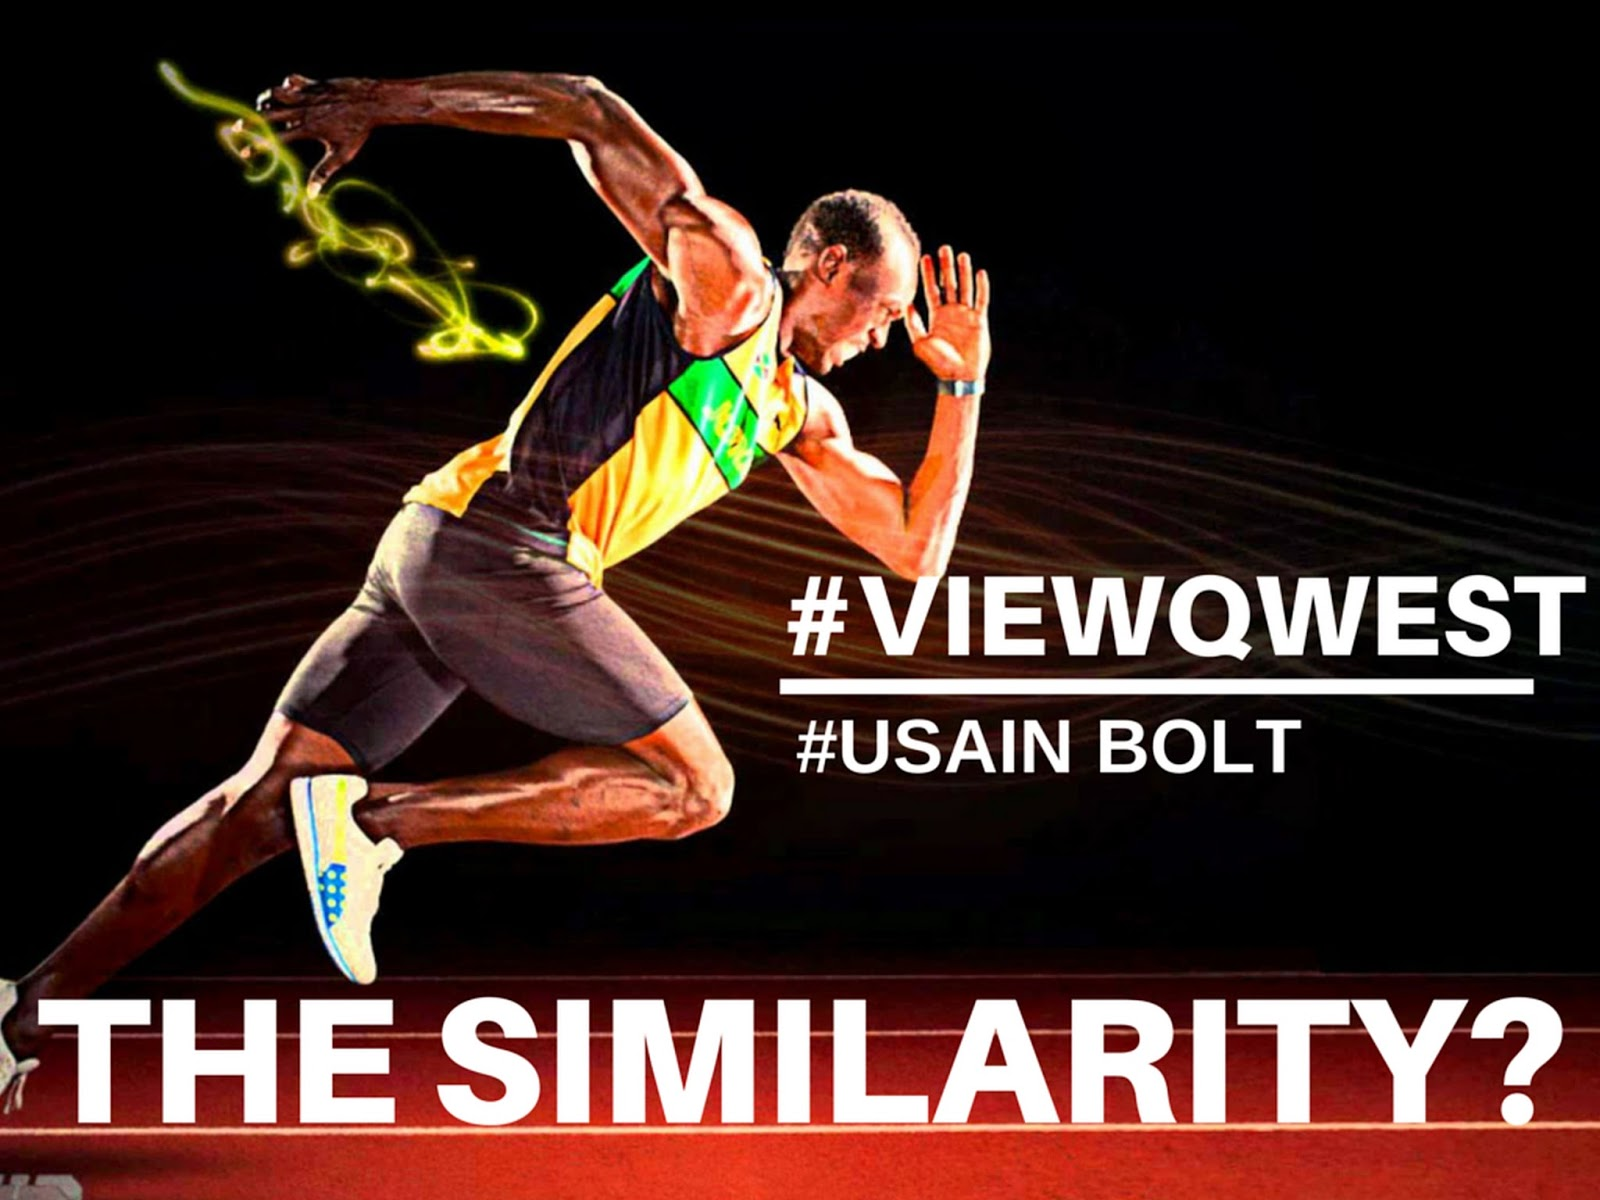 Viewqwest and Usain Bolt